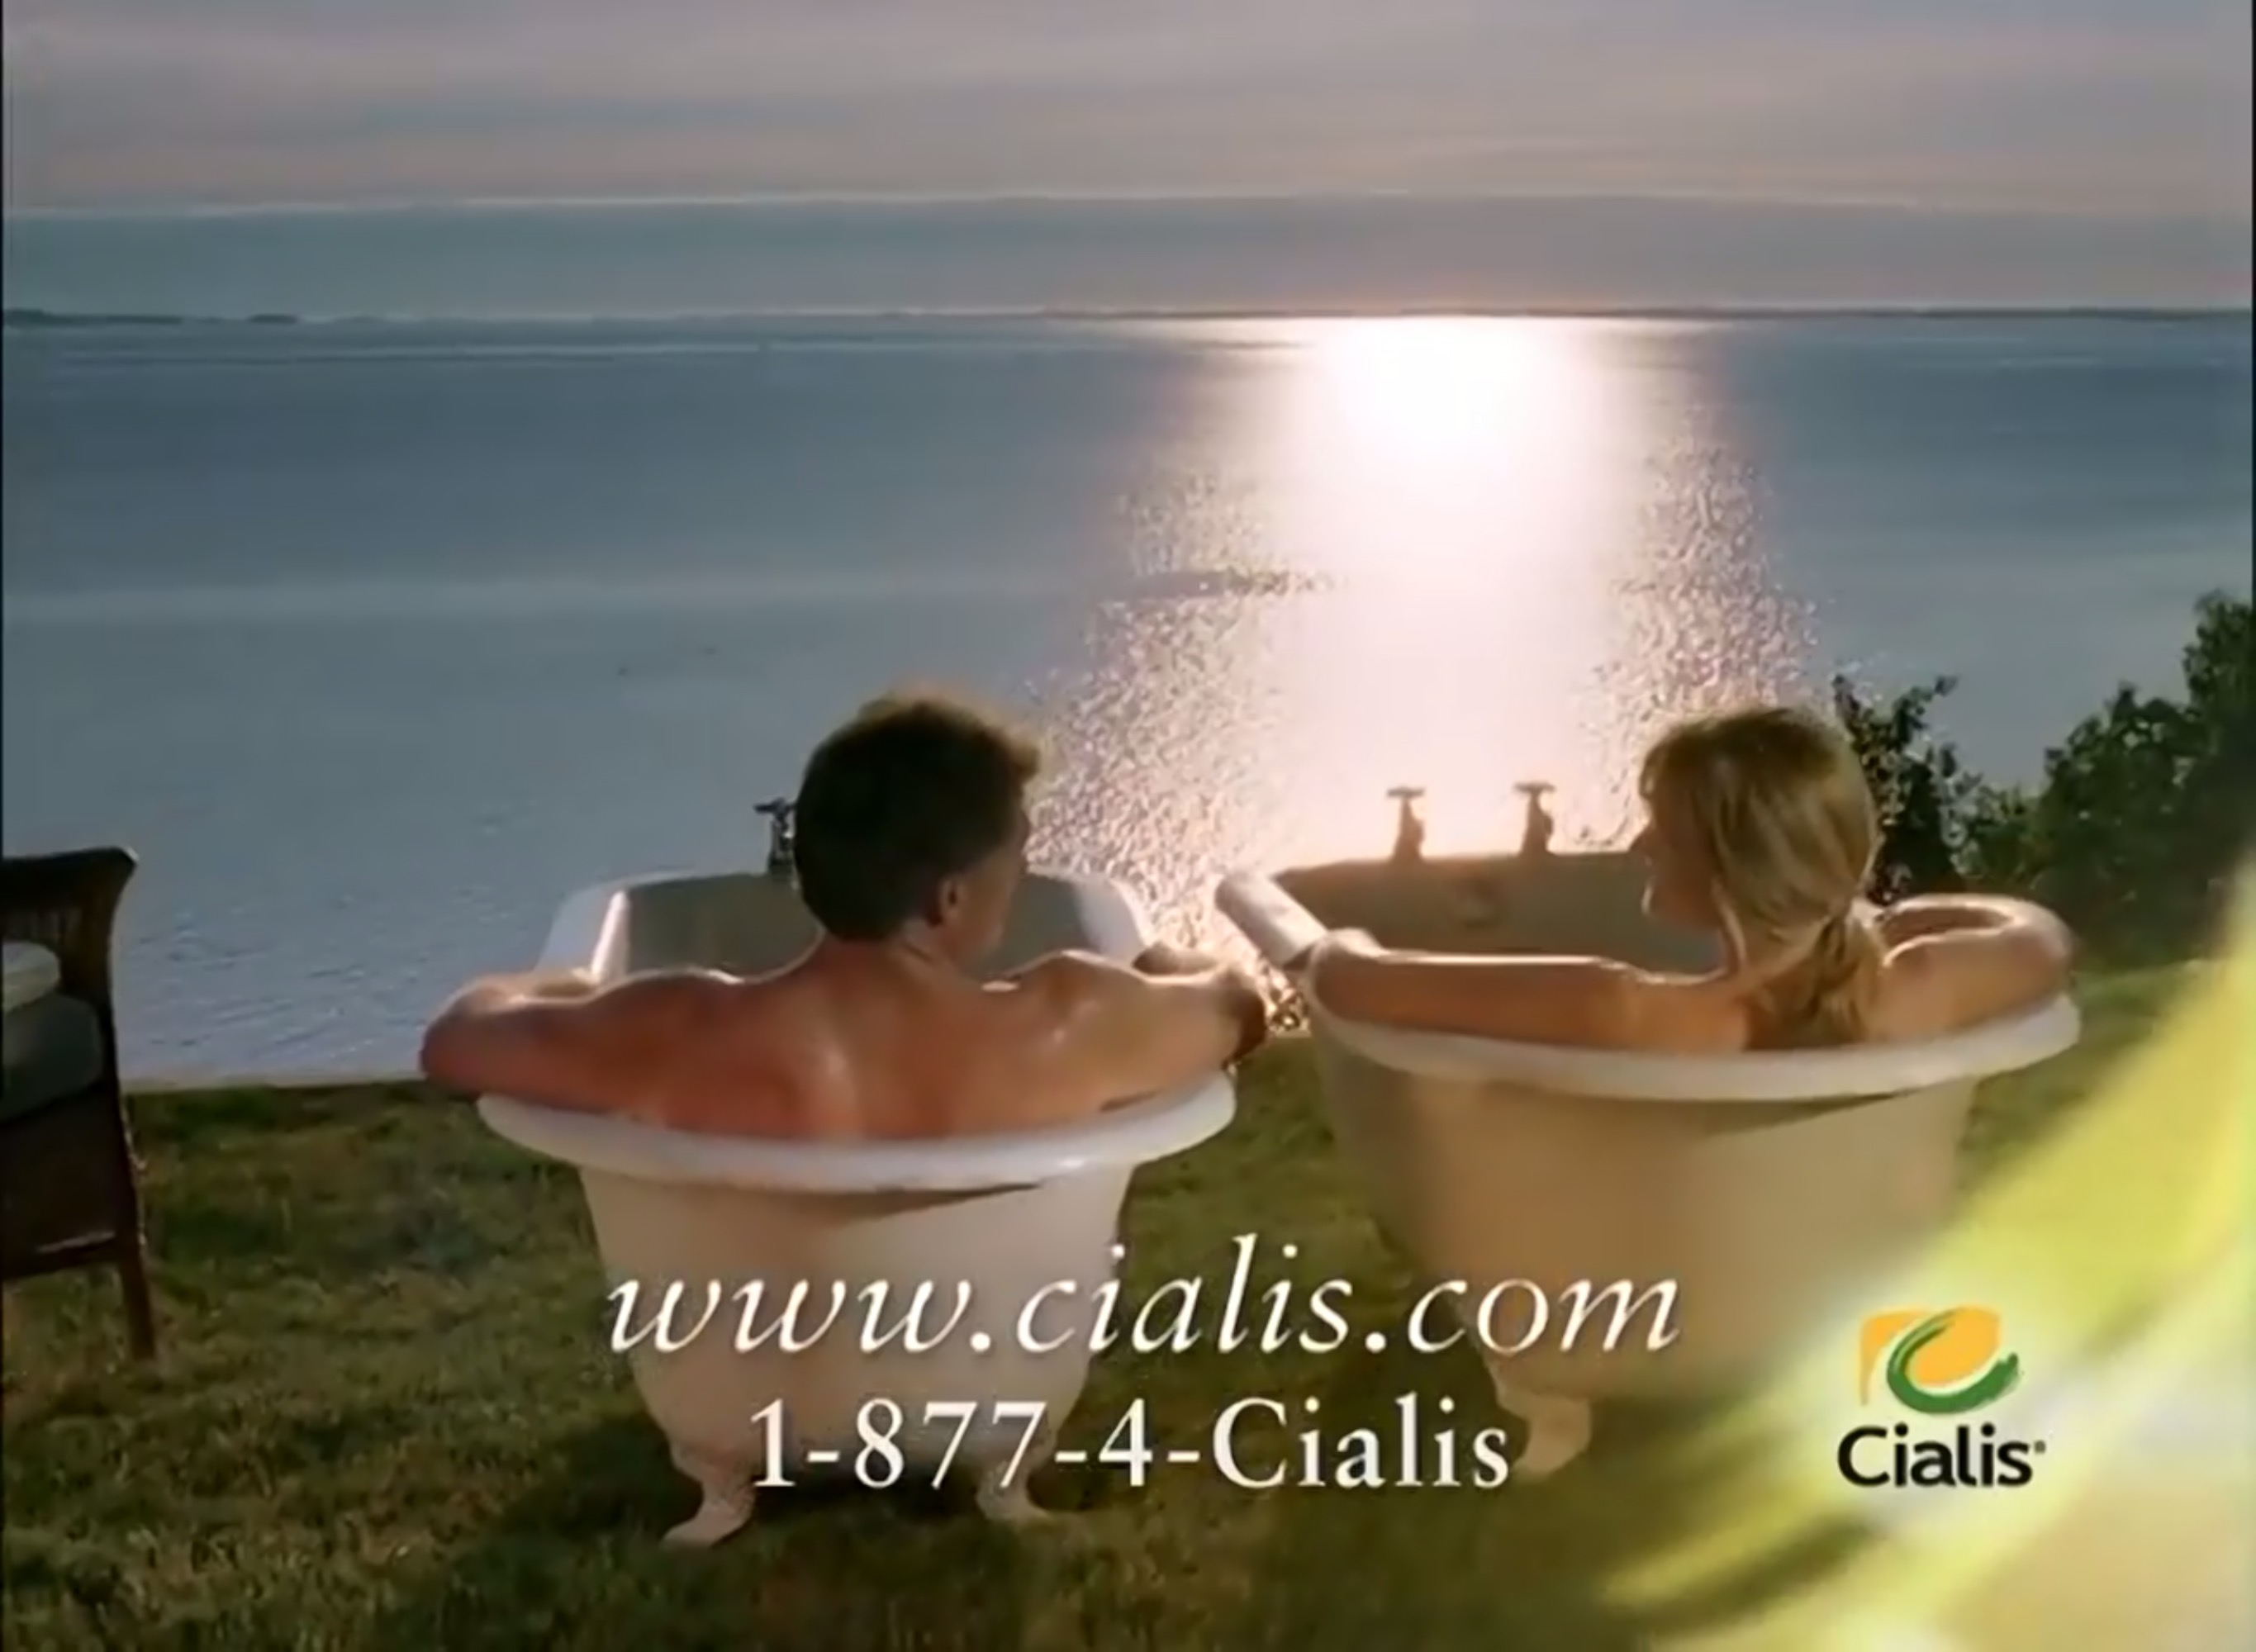 cialis marketing and viagra Viagra tries more direct approach to get rise out of men new work from bbdo favors pep talk from woman over metaphor  vp-marketing of pfizer.